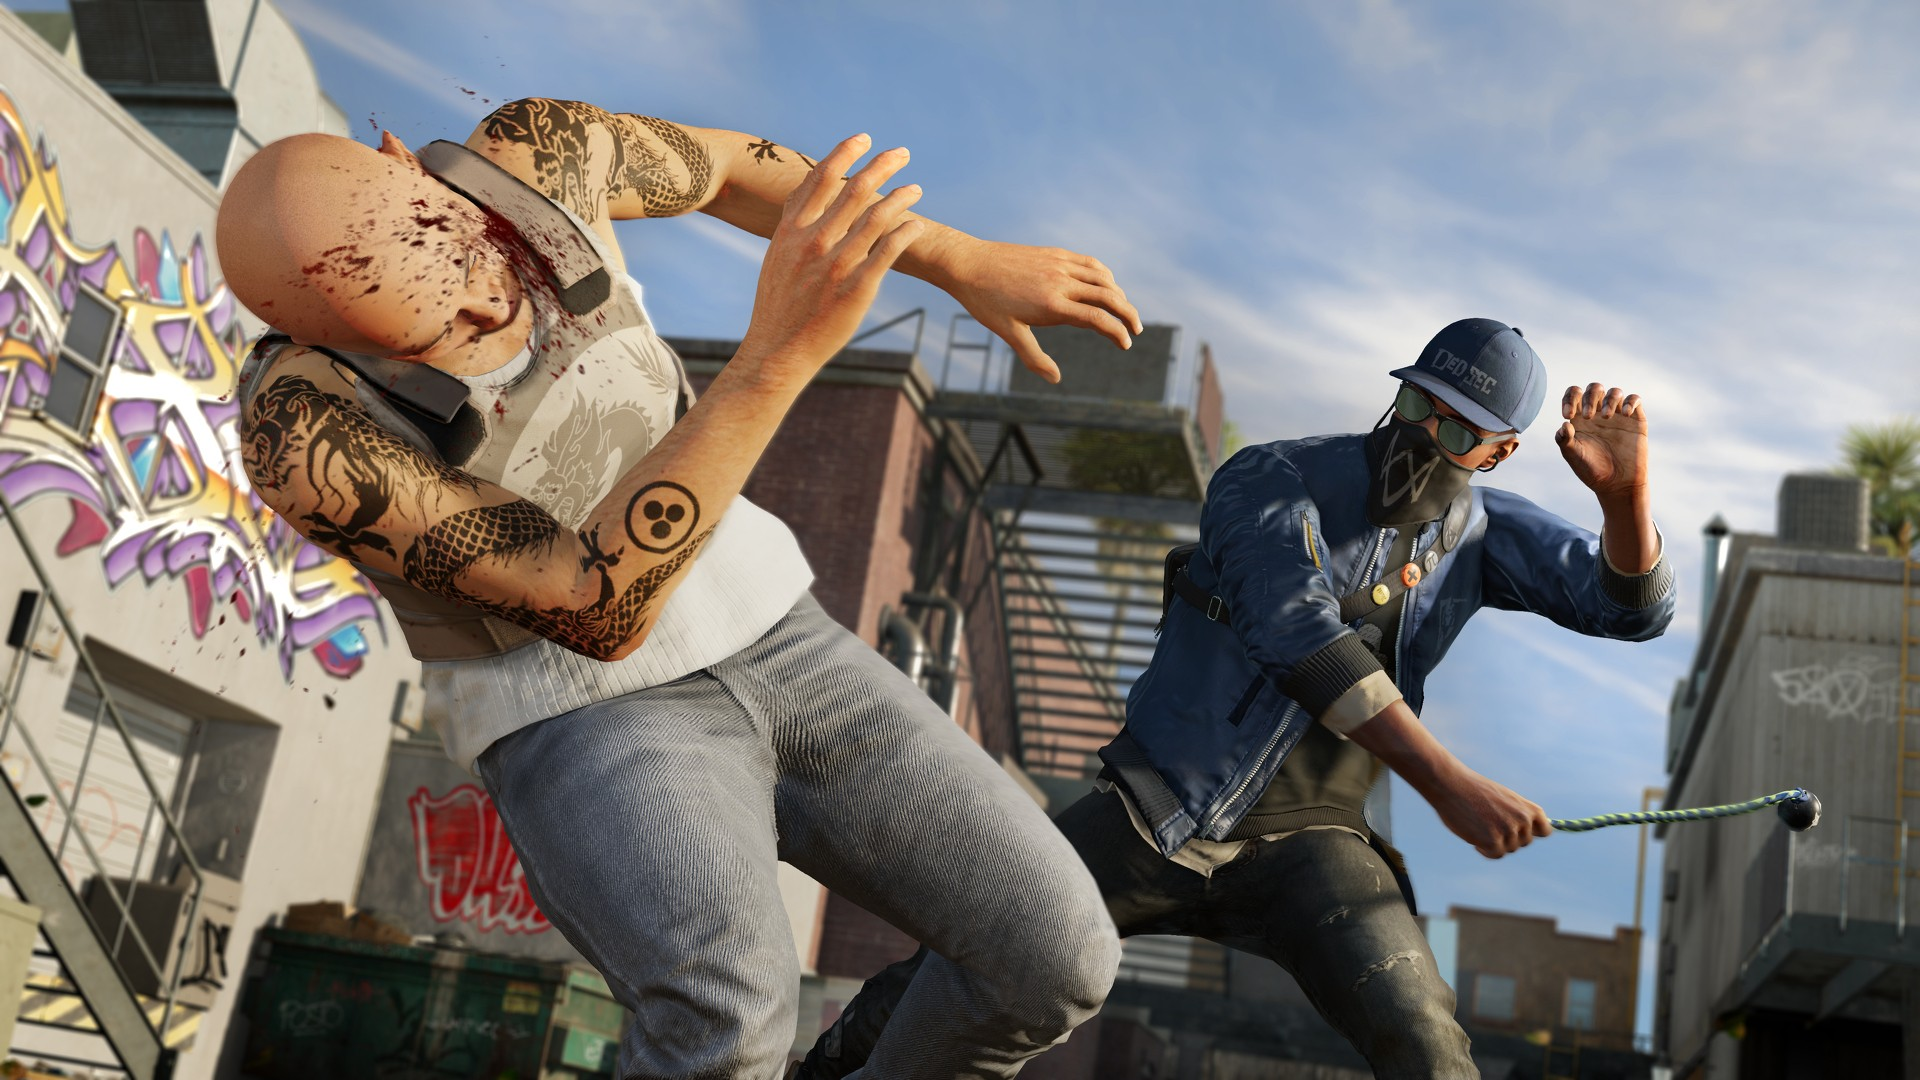 watch dogs 2 pc activation key free